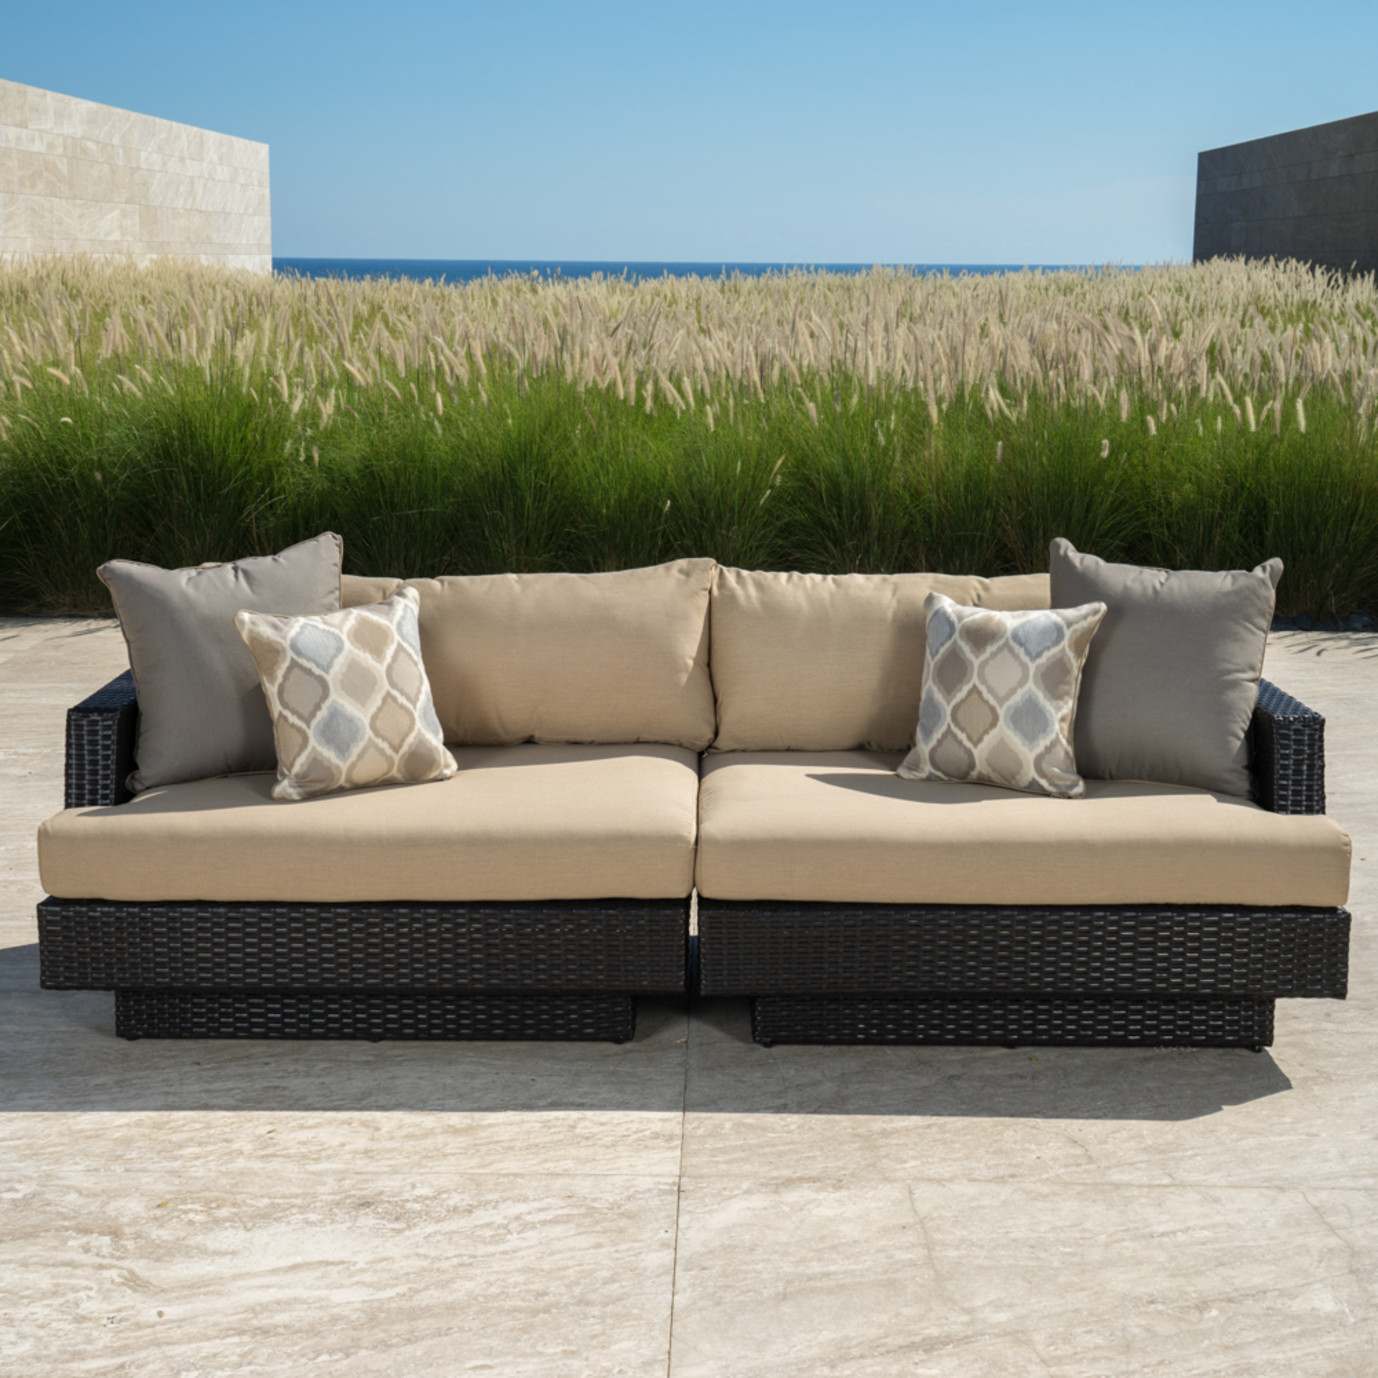 Portofino™ Comfort 96in Sofa - Heather Beige